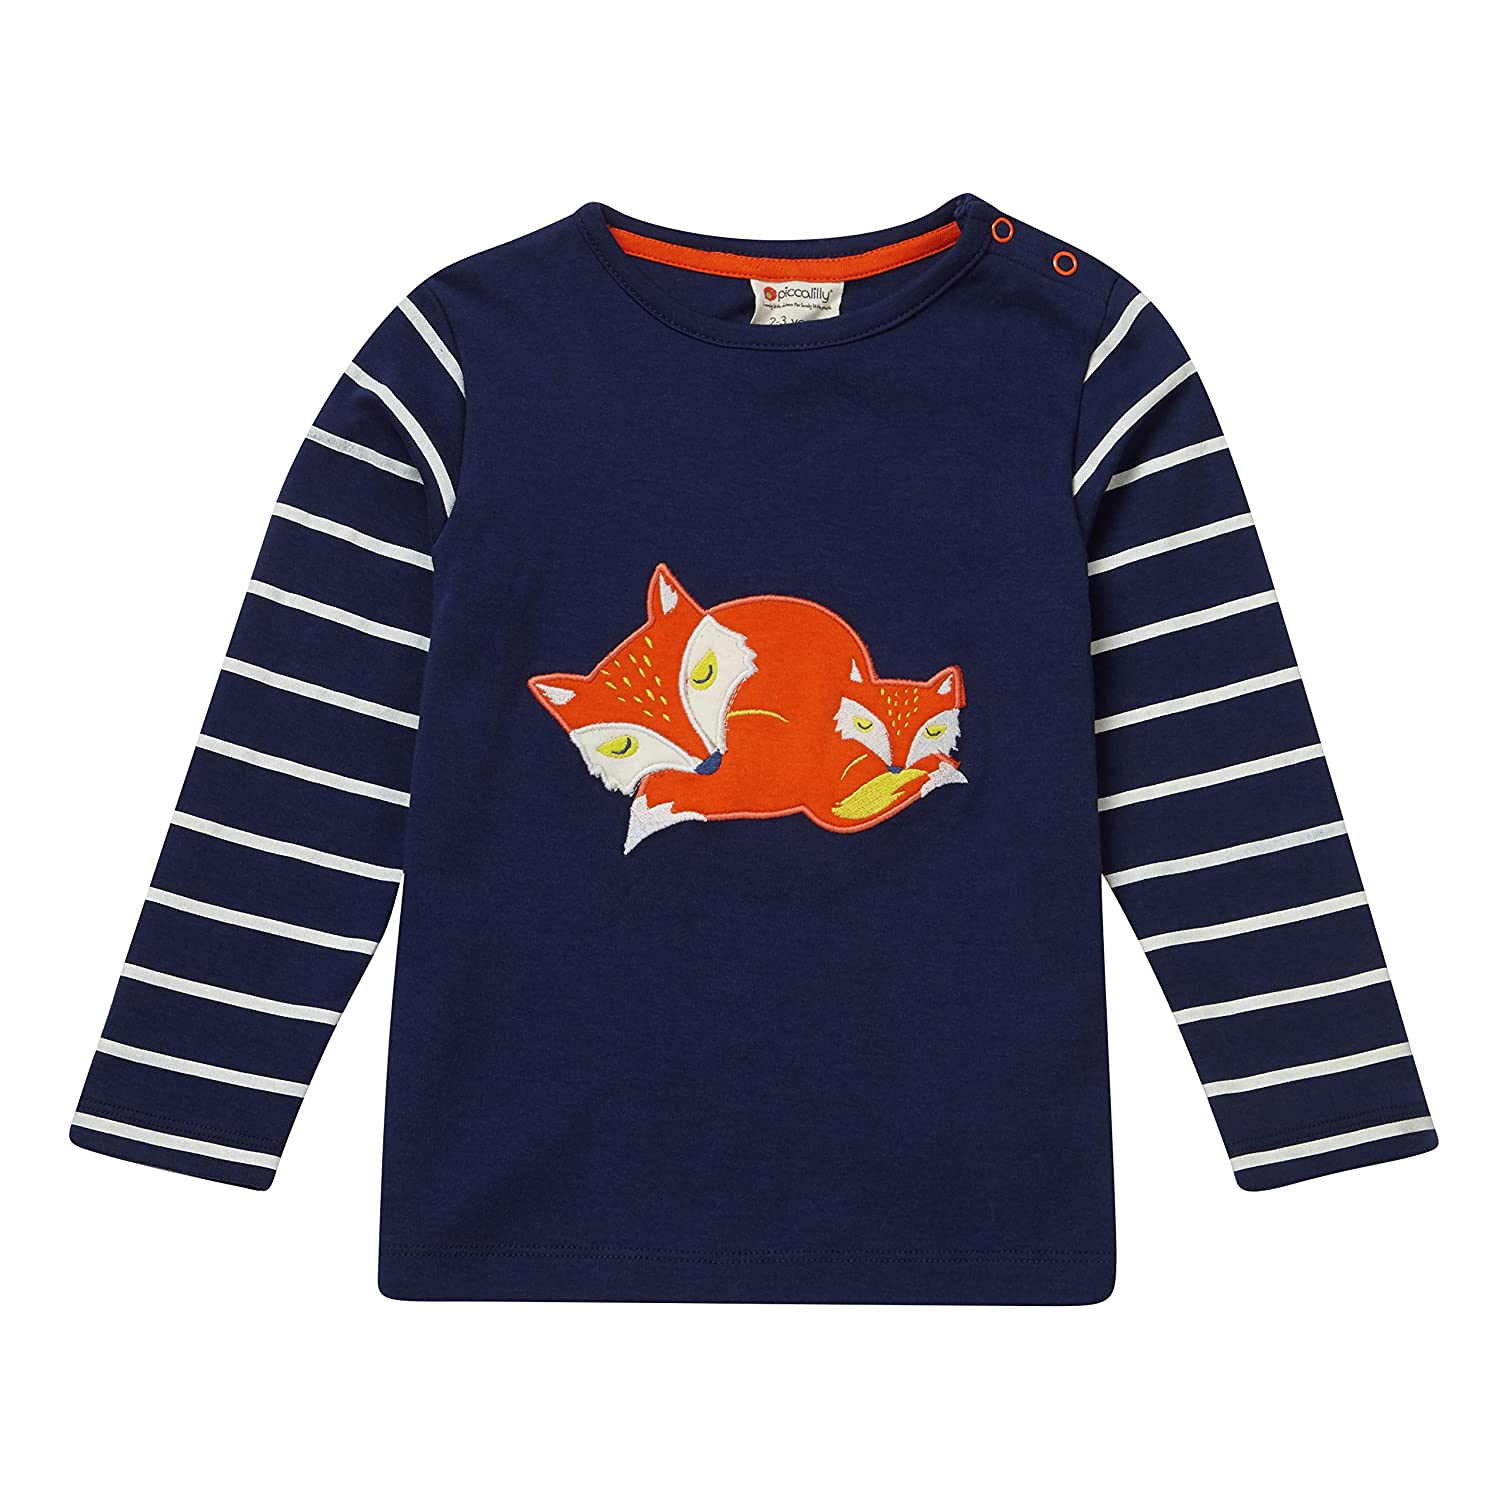 Piccalilly Organic Cotton Unisex Navy Blue Sleeping Foxes Long Sleeved Top